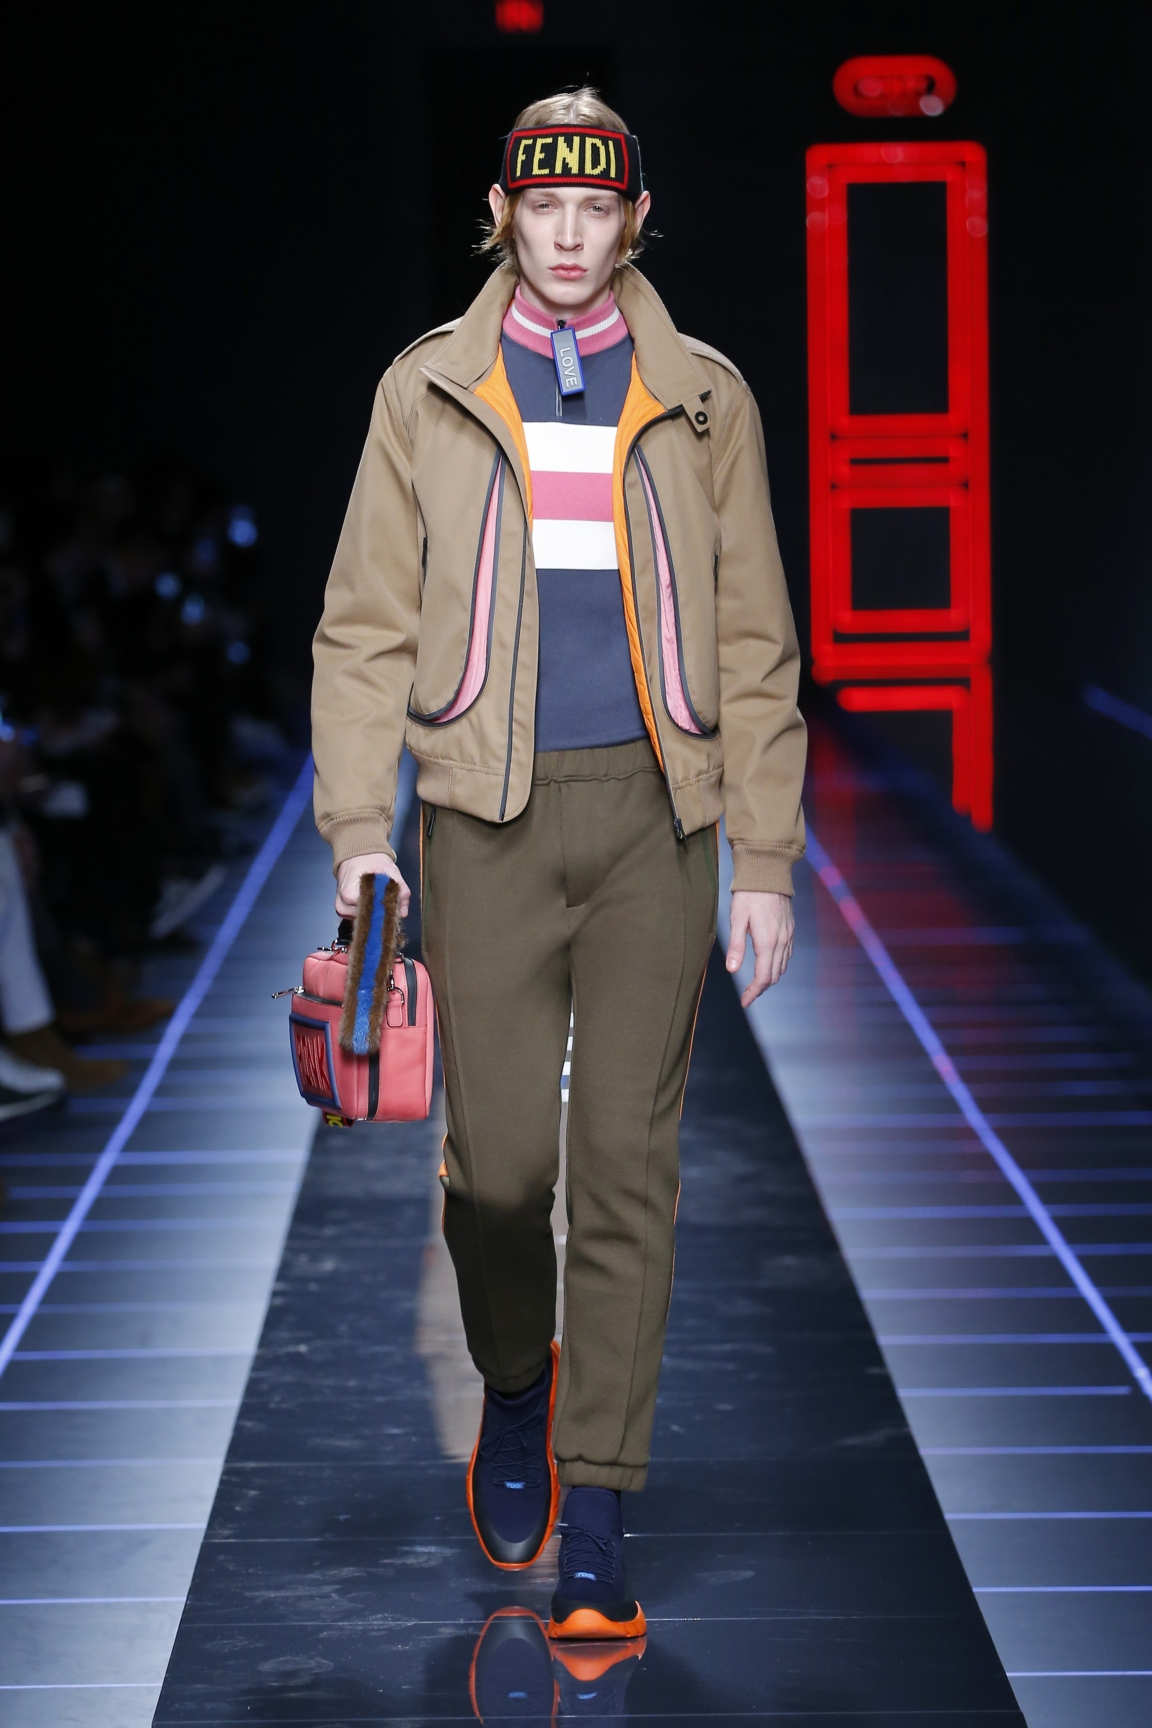 fendi-men-fw16-17-look-19